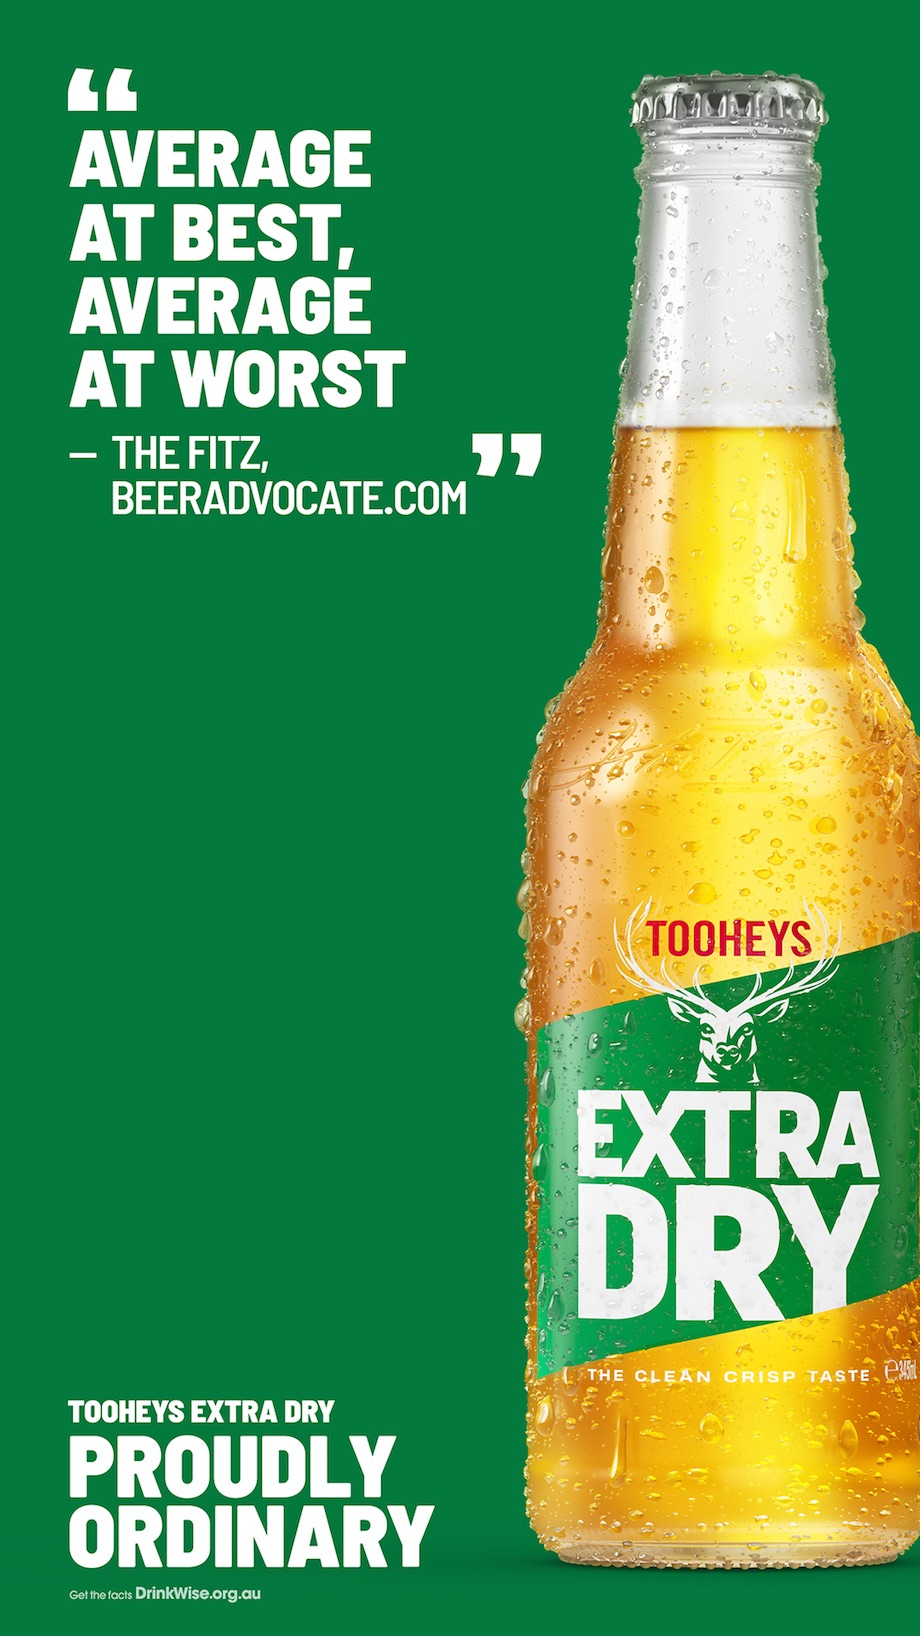 Tooheys Extra Dry Celebrates 'The Proudly Ordinary' in animated campaign via 72andSunny